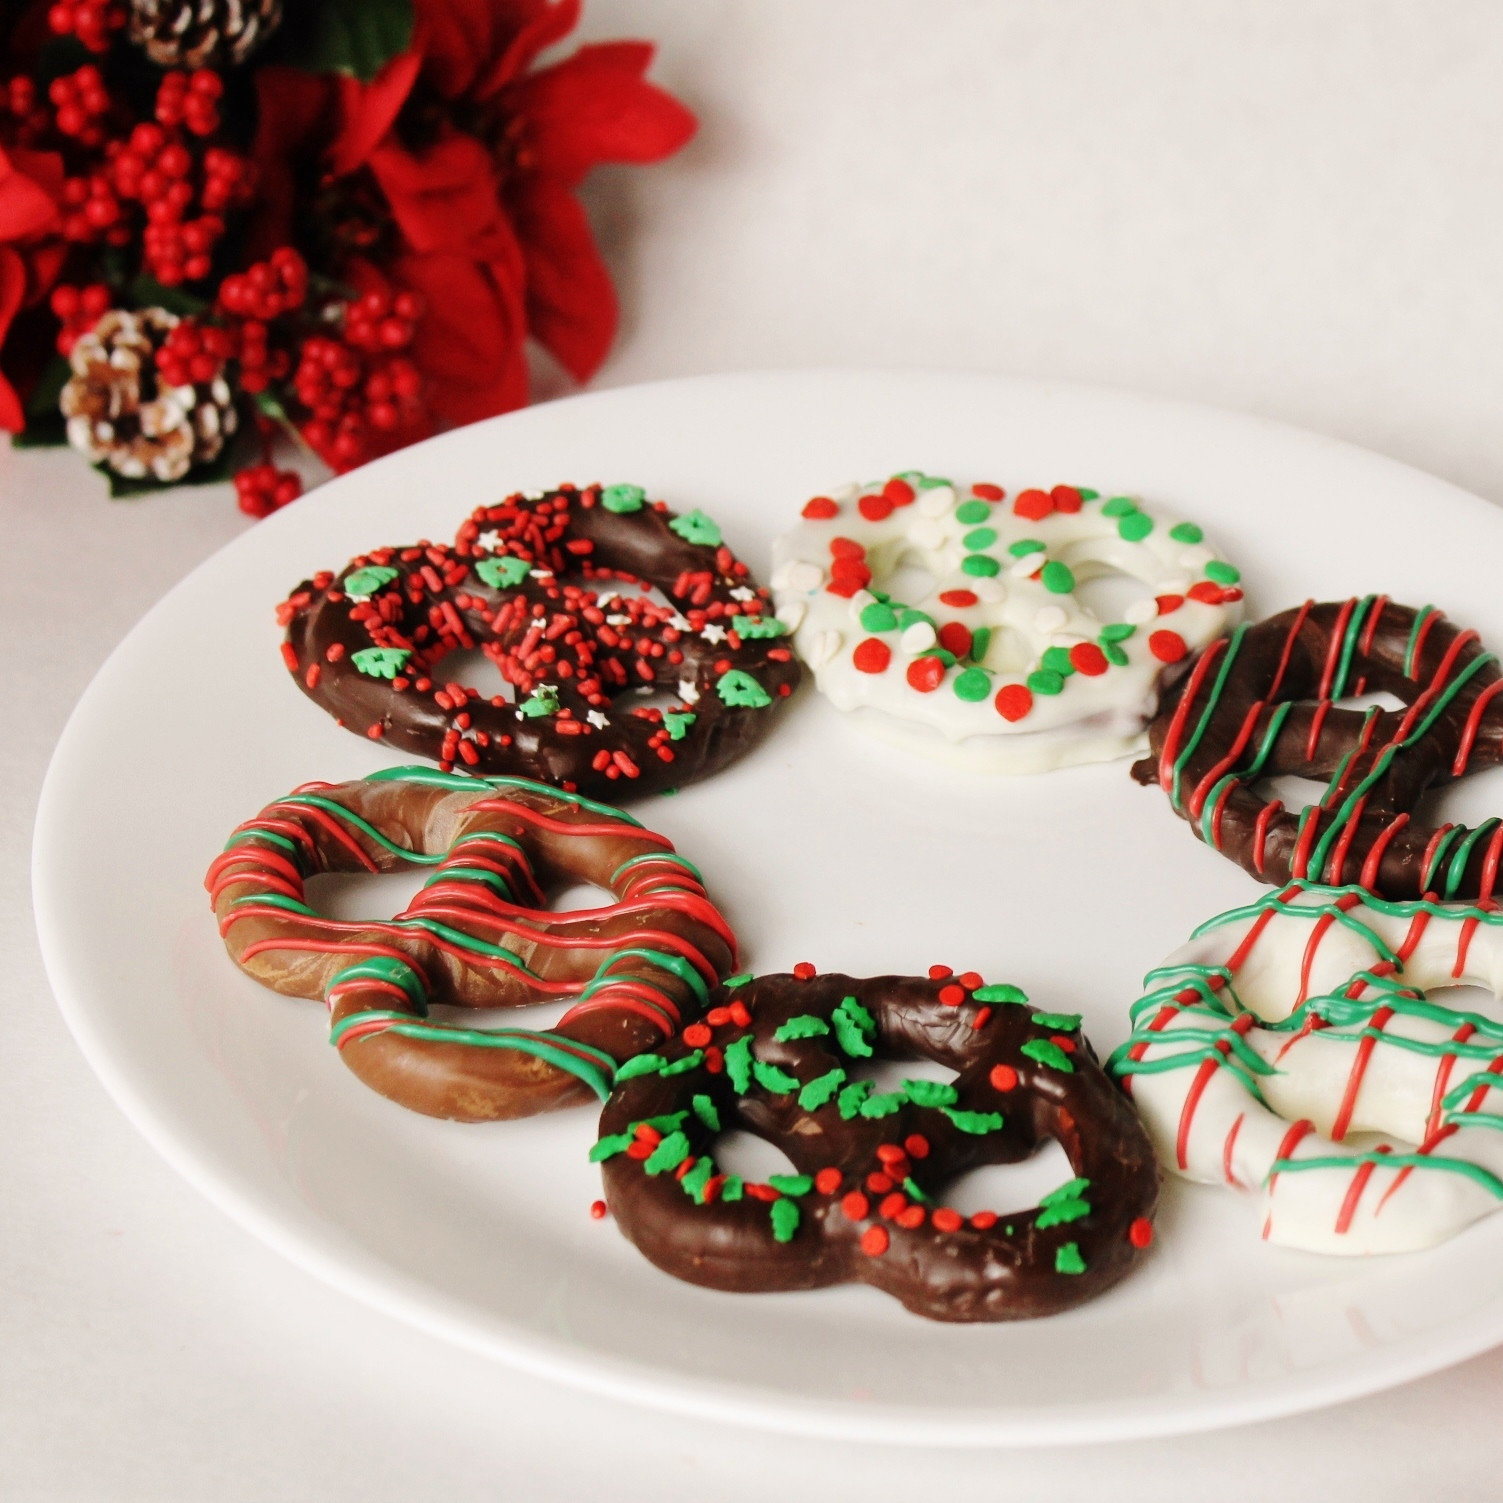 Christmas Dipped Pretzels  Christmas Chocolate Covered Pretzels Knots